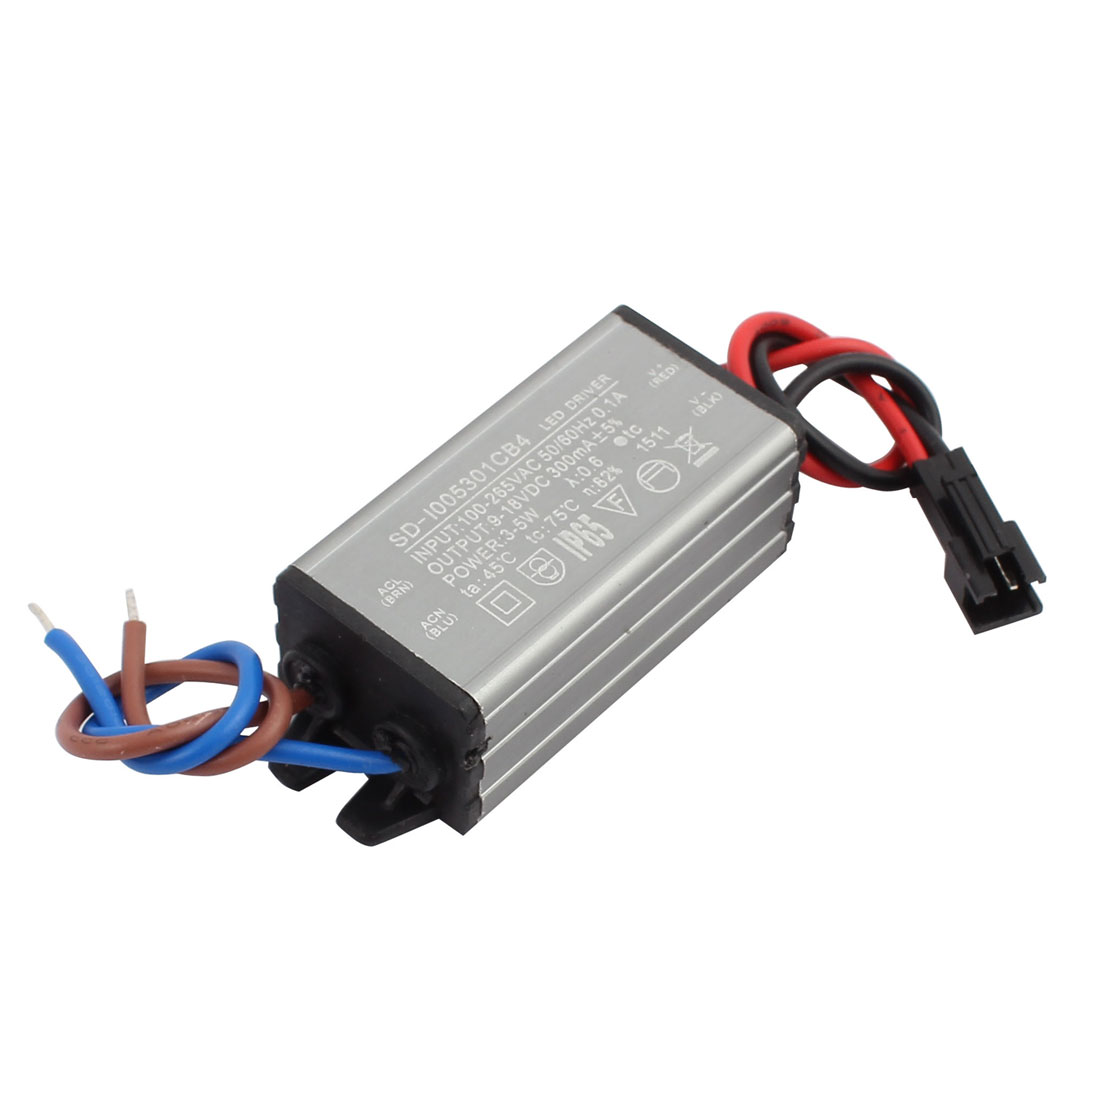 AC100-265V to DC9-18V 3-5W Transformer IP65 Waterproof LED Driver Power Supply